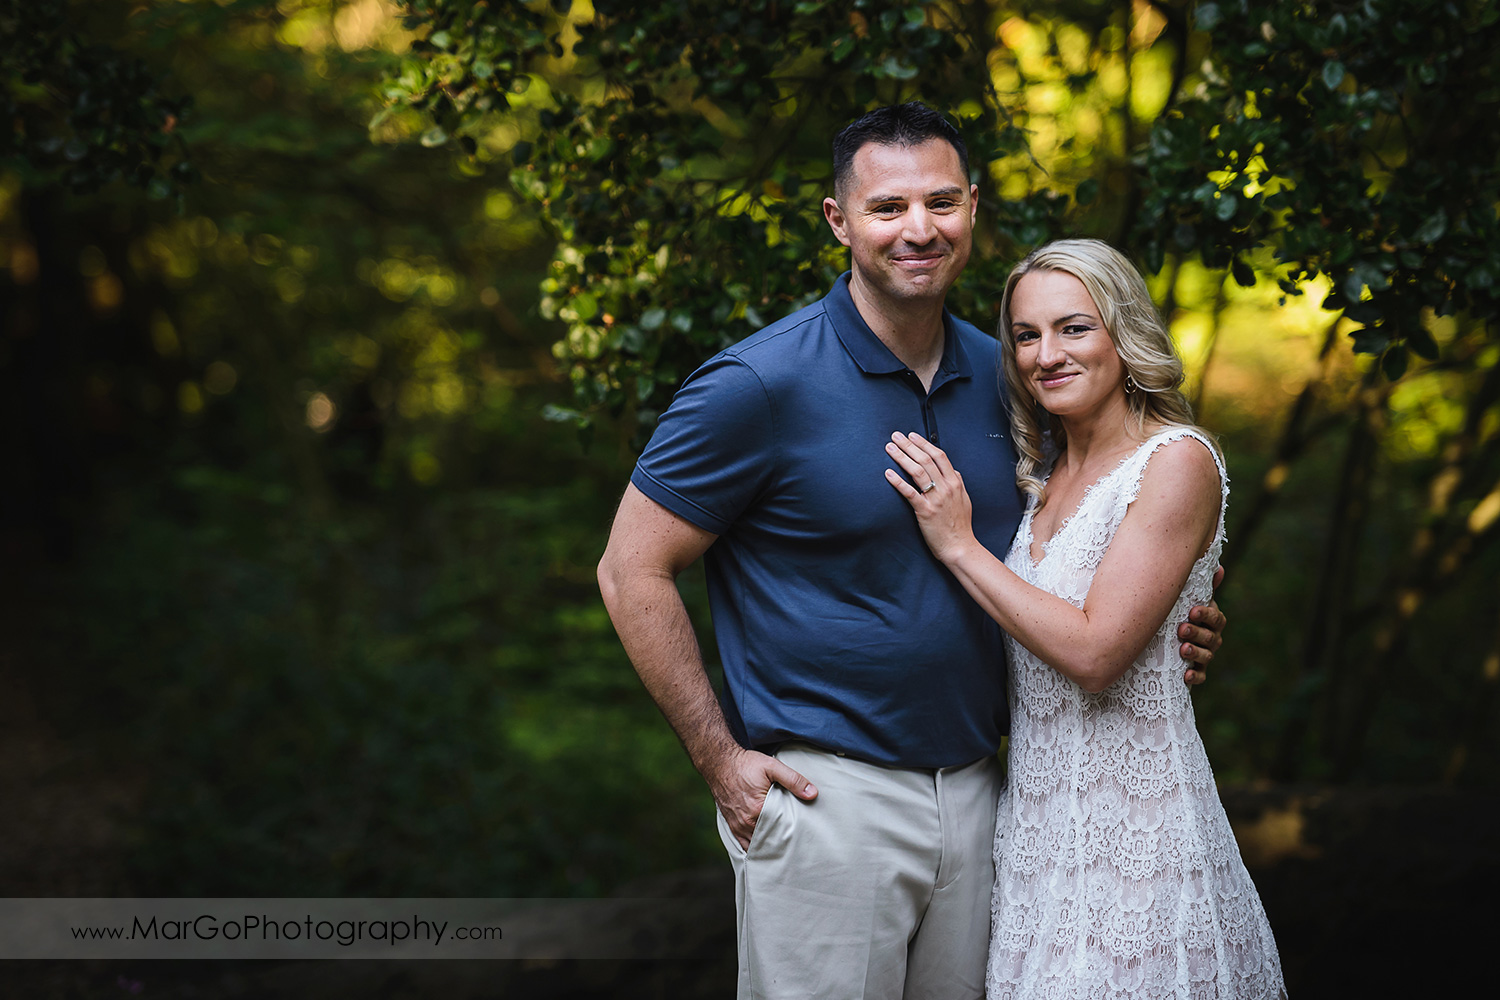 3/4 portrait of man in navy blue shirt and woman in white dress looking into camera during engagement session at San Francisco Golden Gate Park